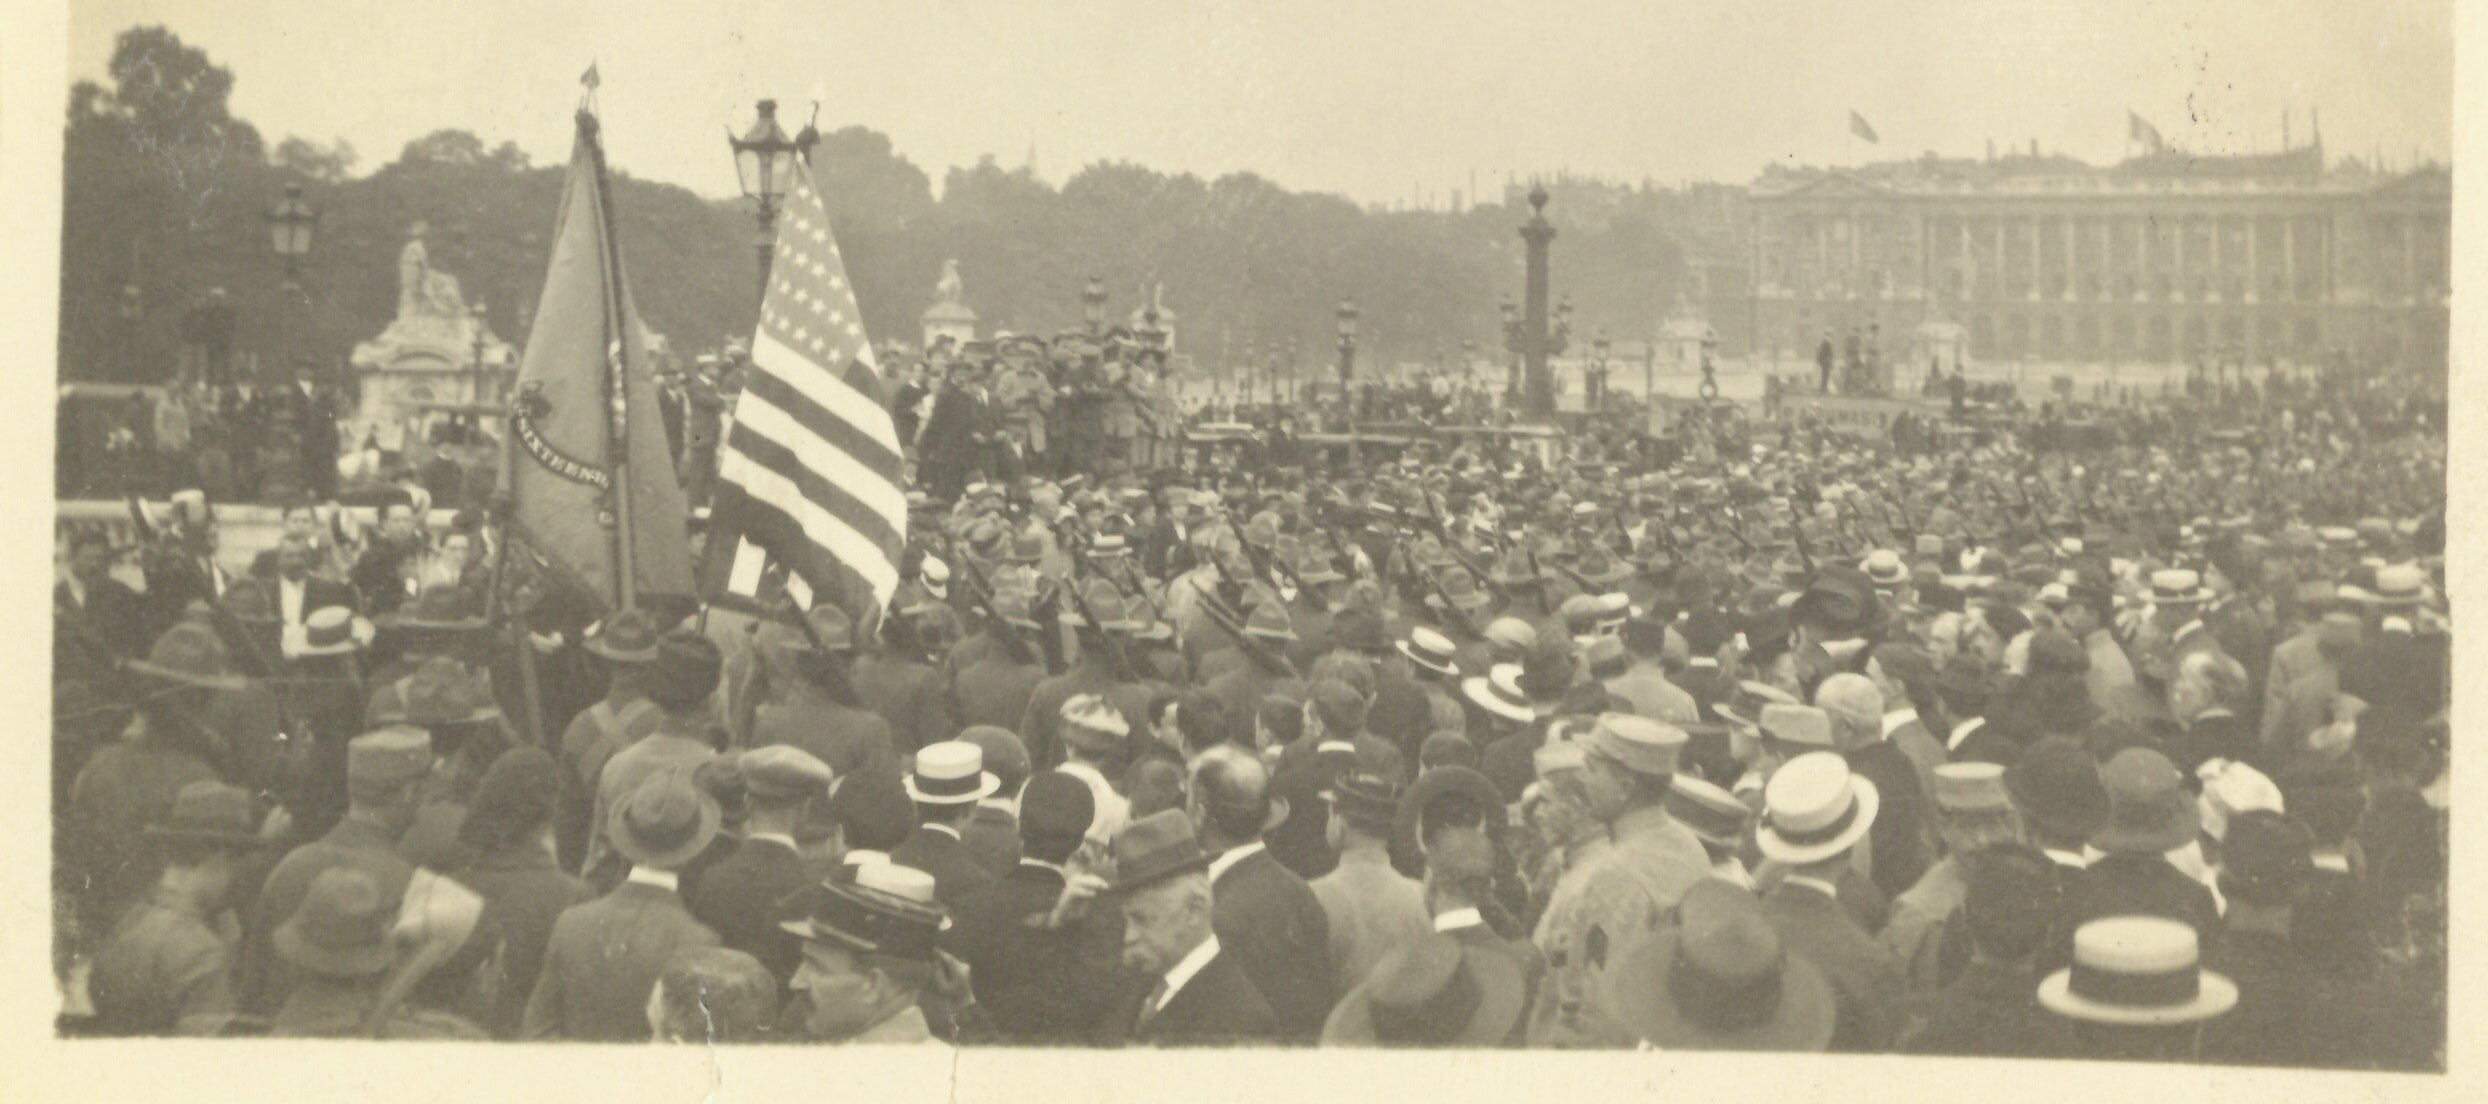 24. Americas First Expeditionary Force 16th Regiment U.S. regulars marching thru La Place de la Concorde on July 4 1917